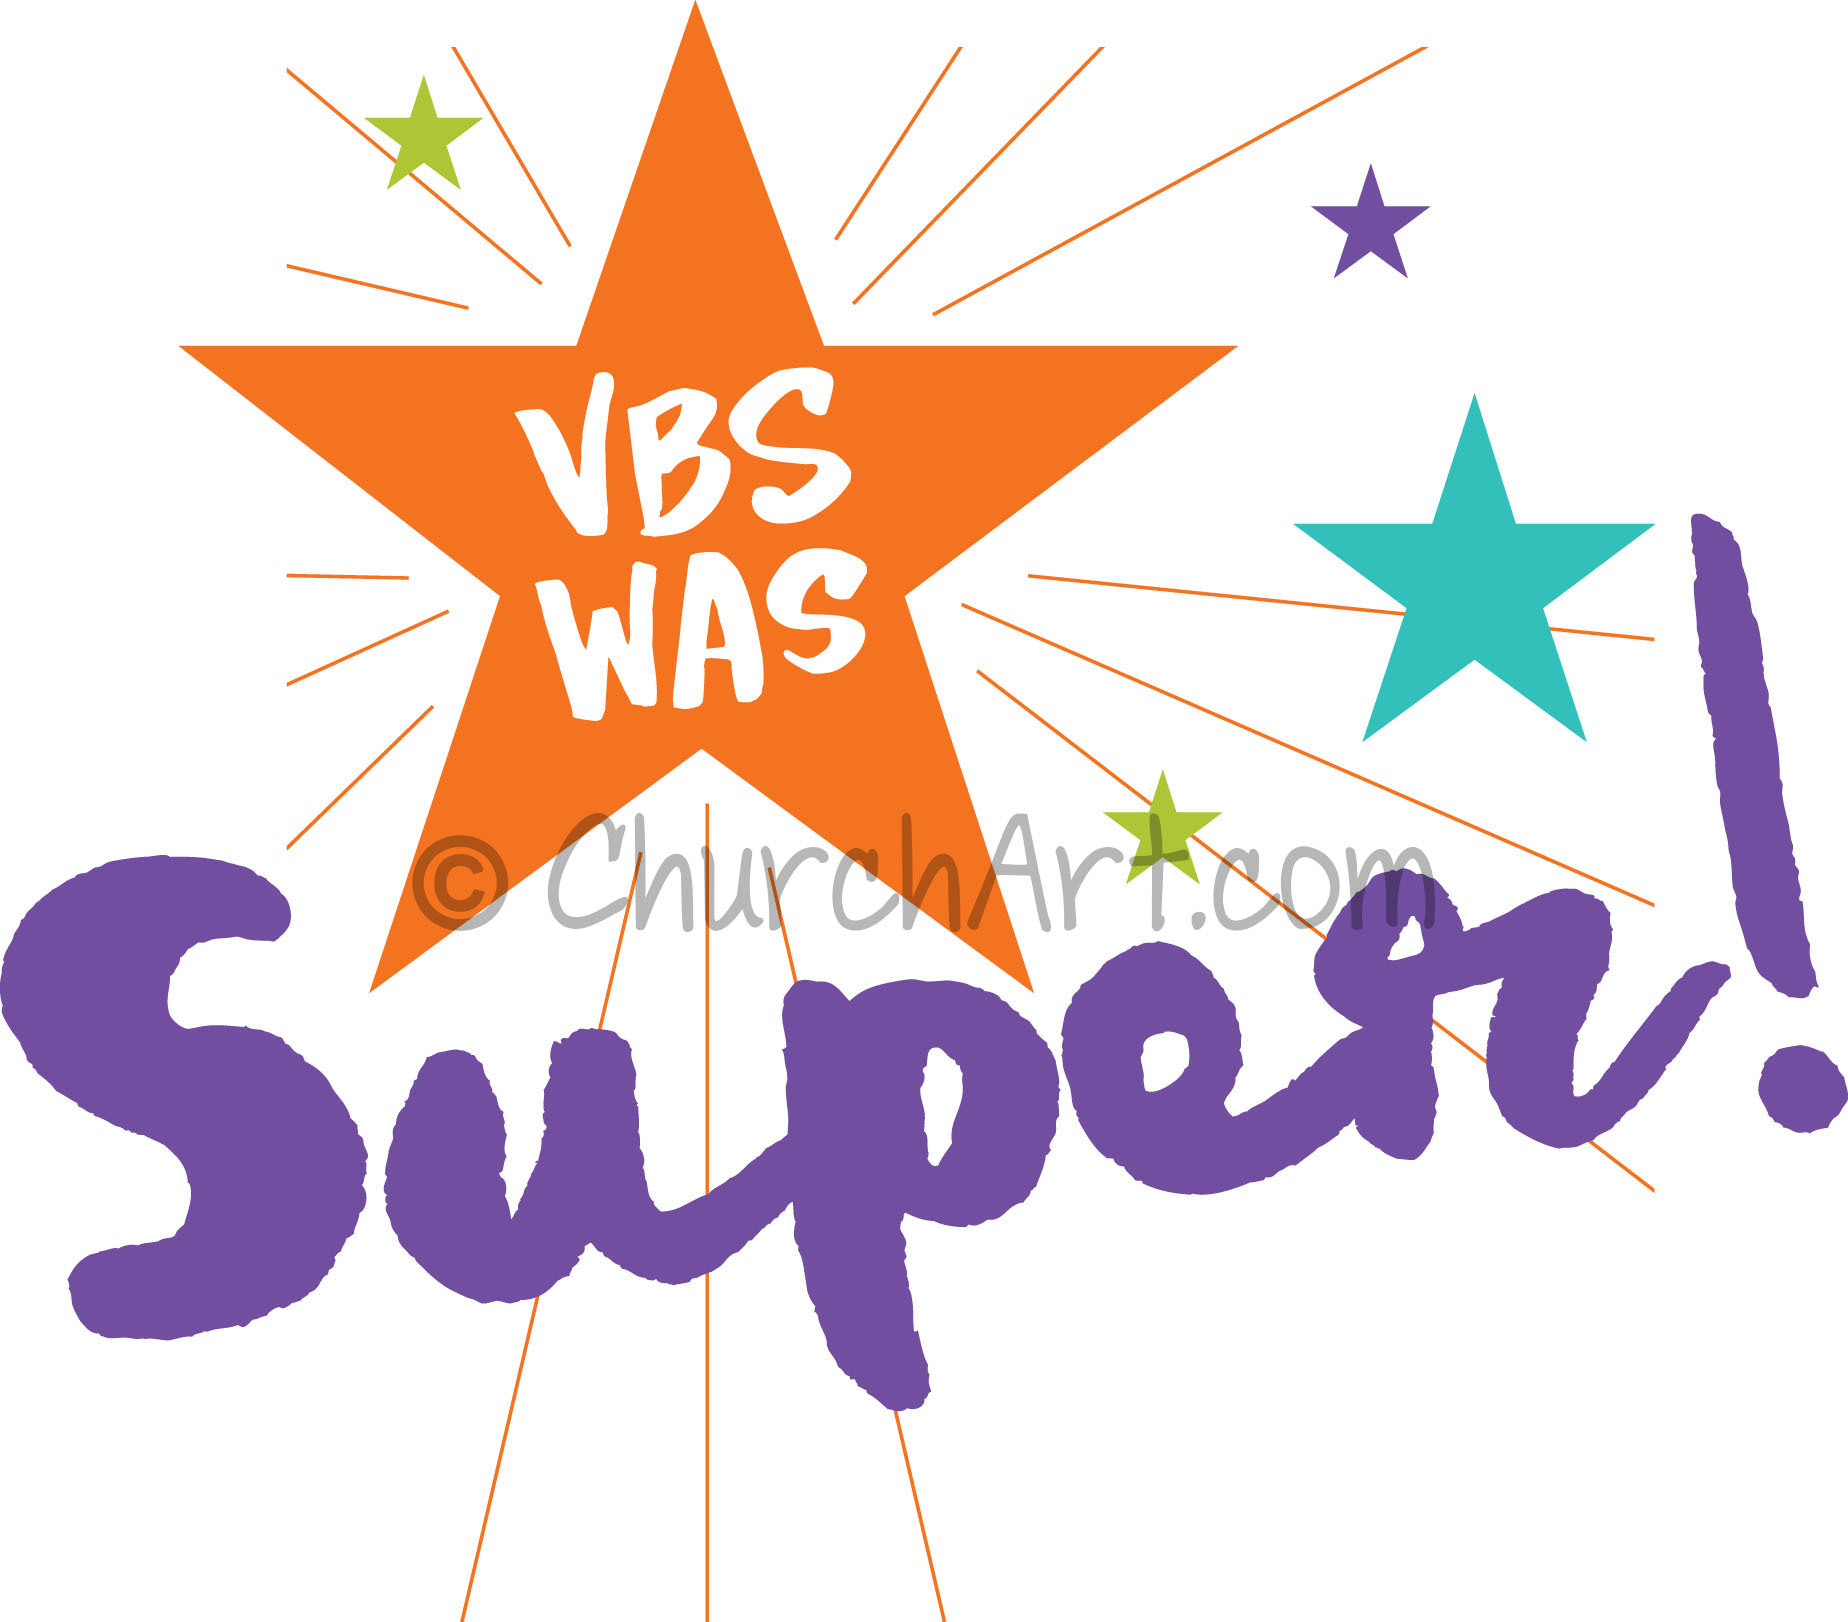 Vacation Bible School Clip-Art with VBS was Super caption